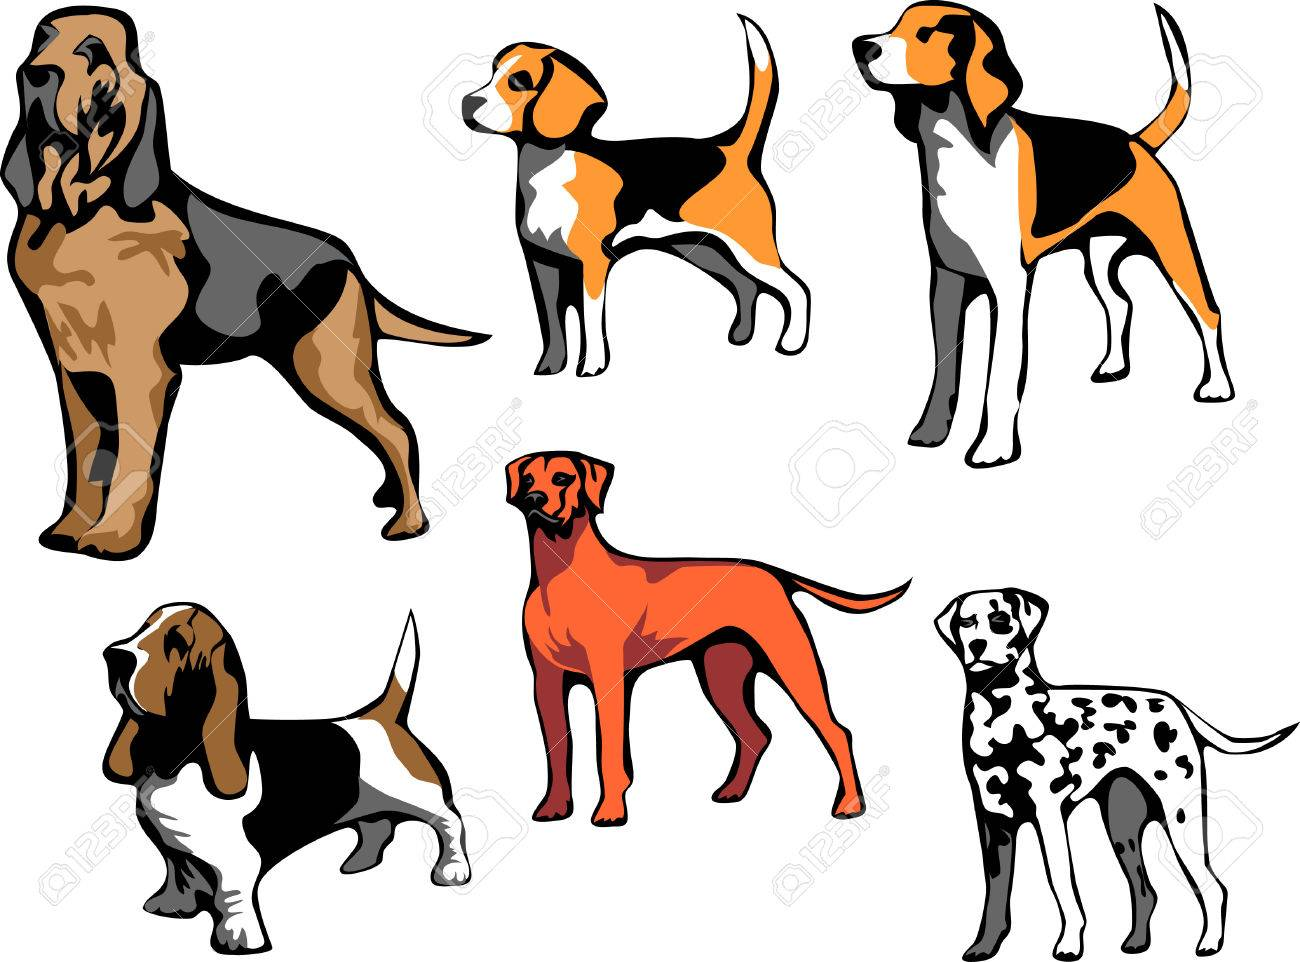 297 Bloodhound Dog Stock Vector Illustration And Royalty Free ...